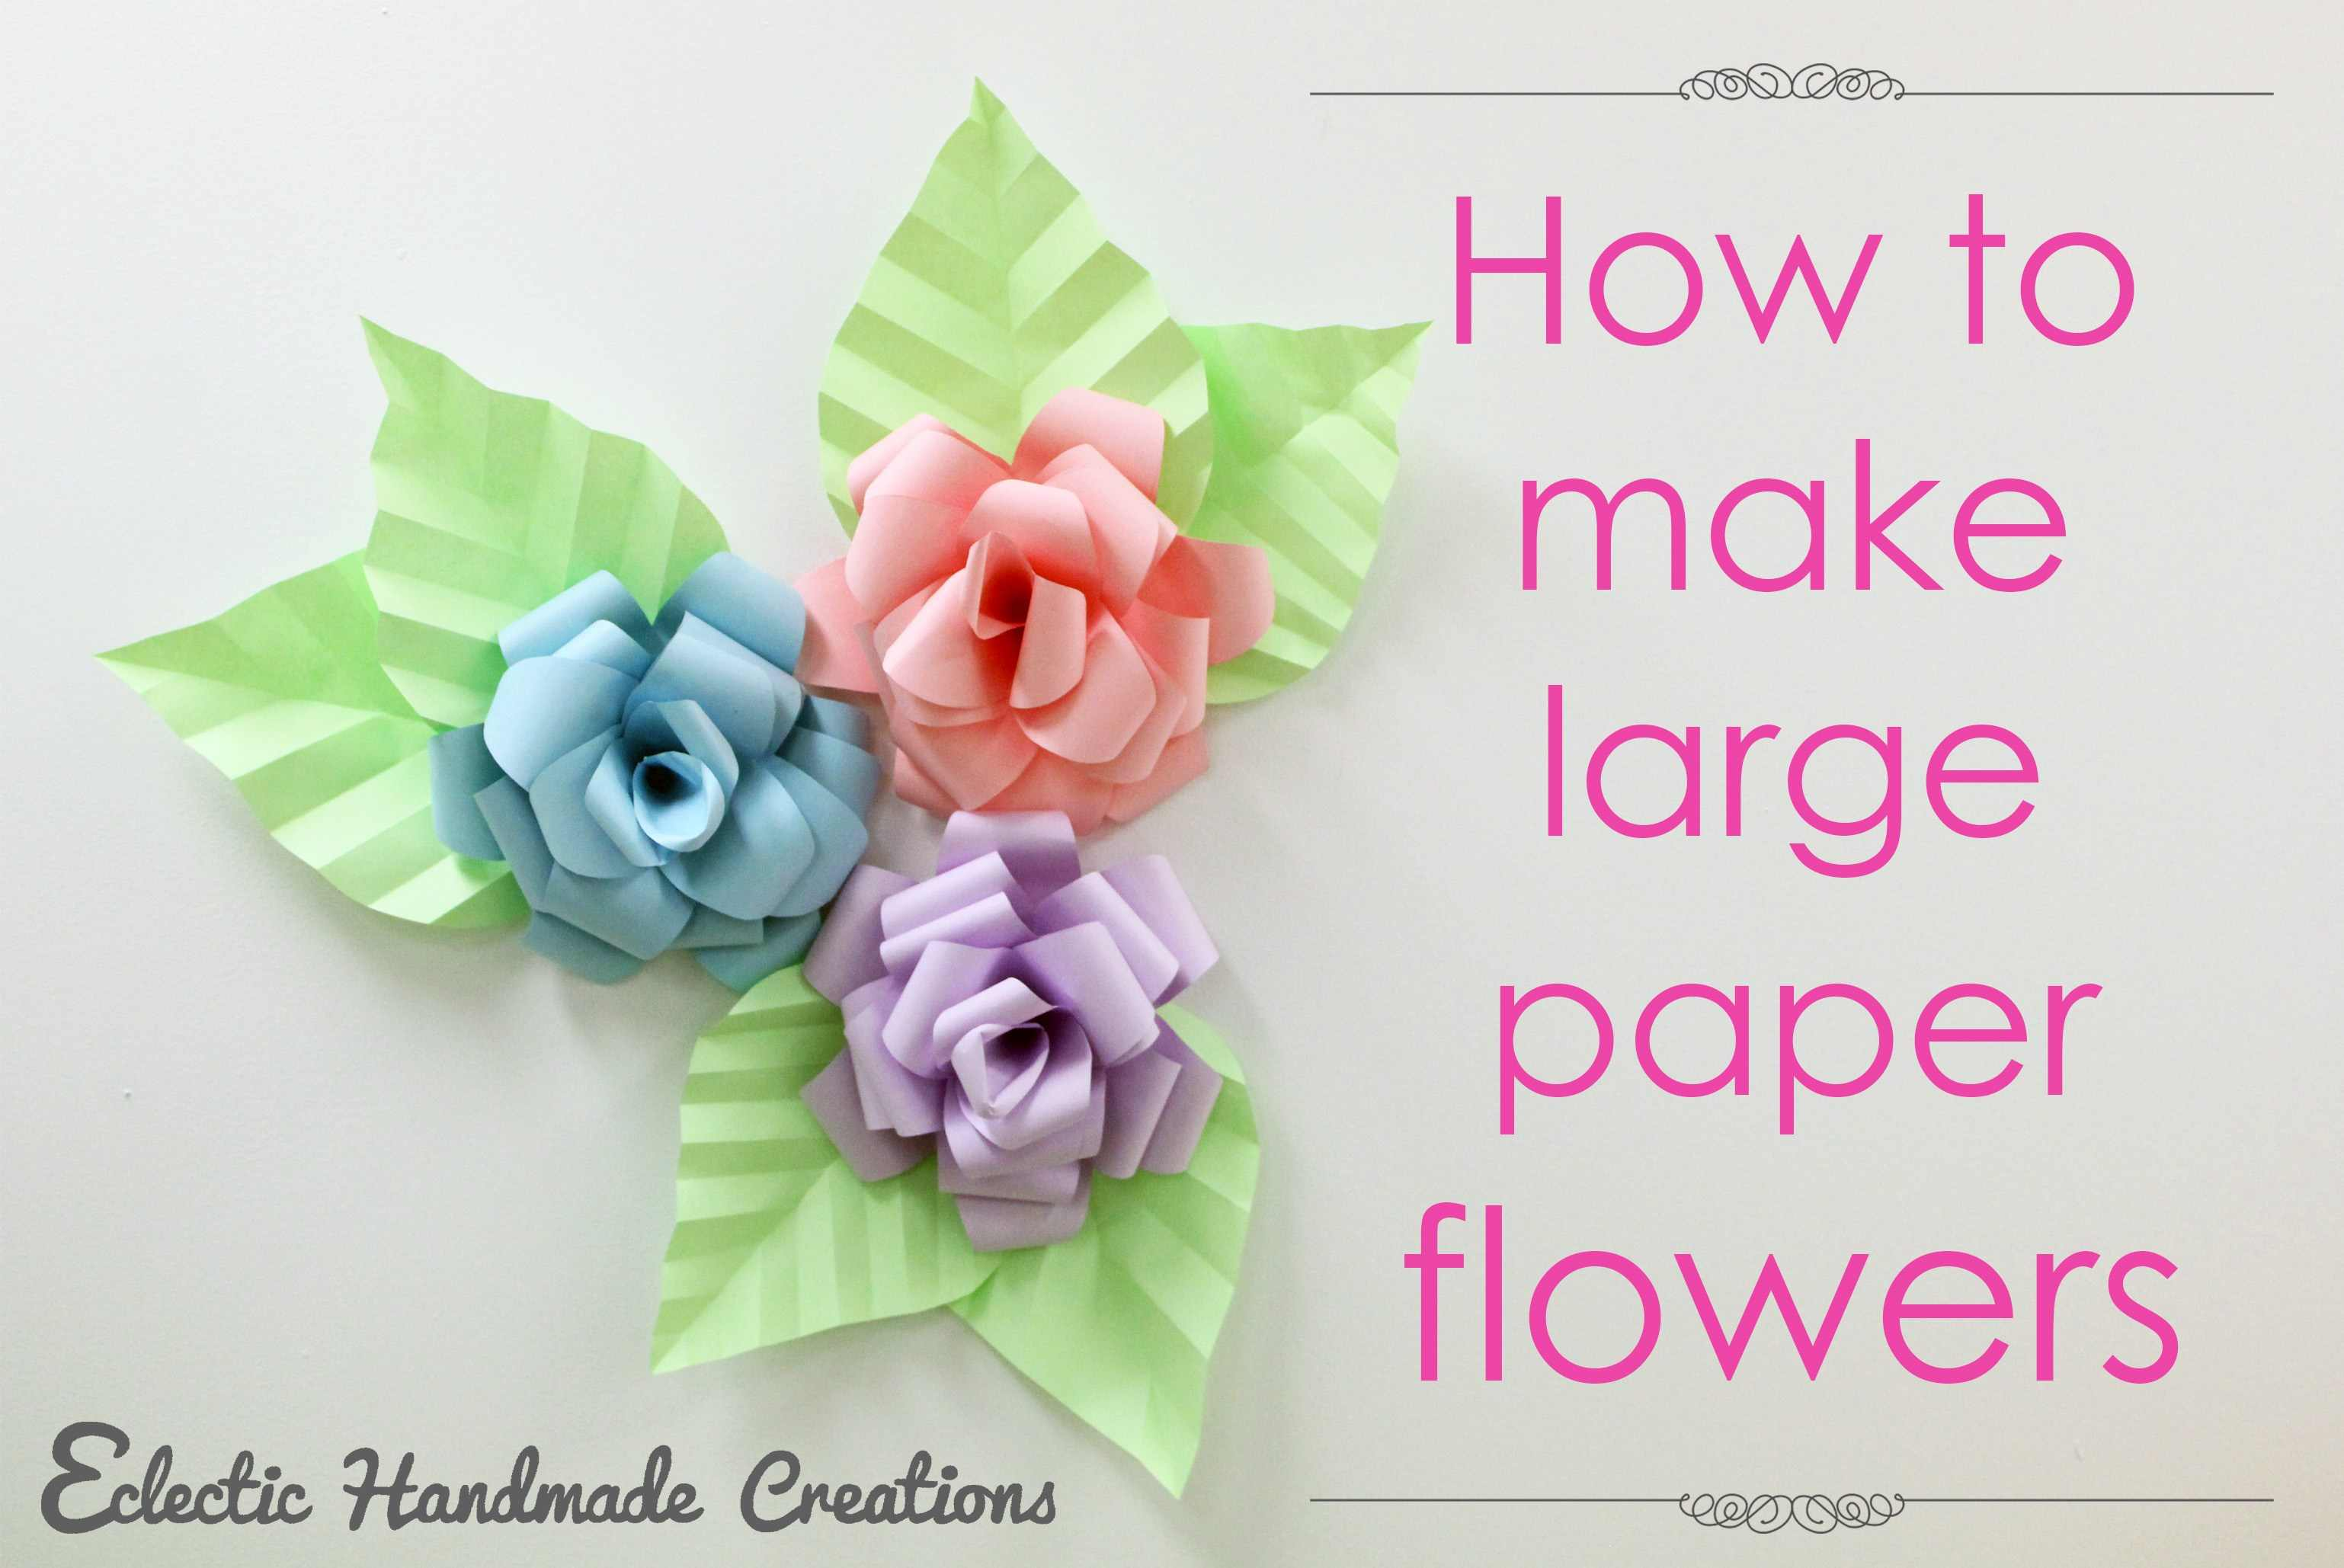 How to make large paper flowers craftsmile how to make large paper flowers mightylinksfo